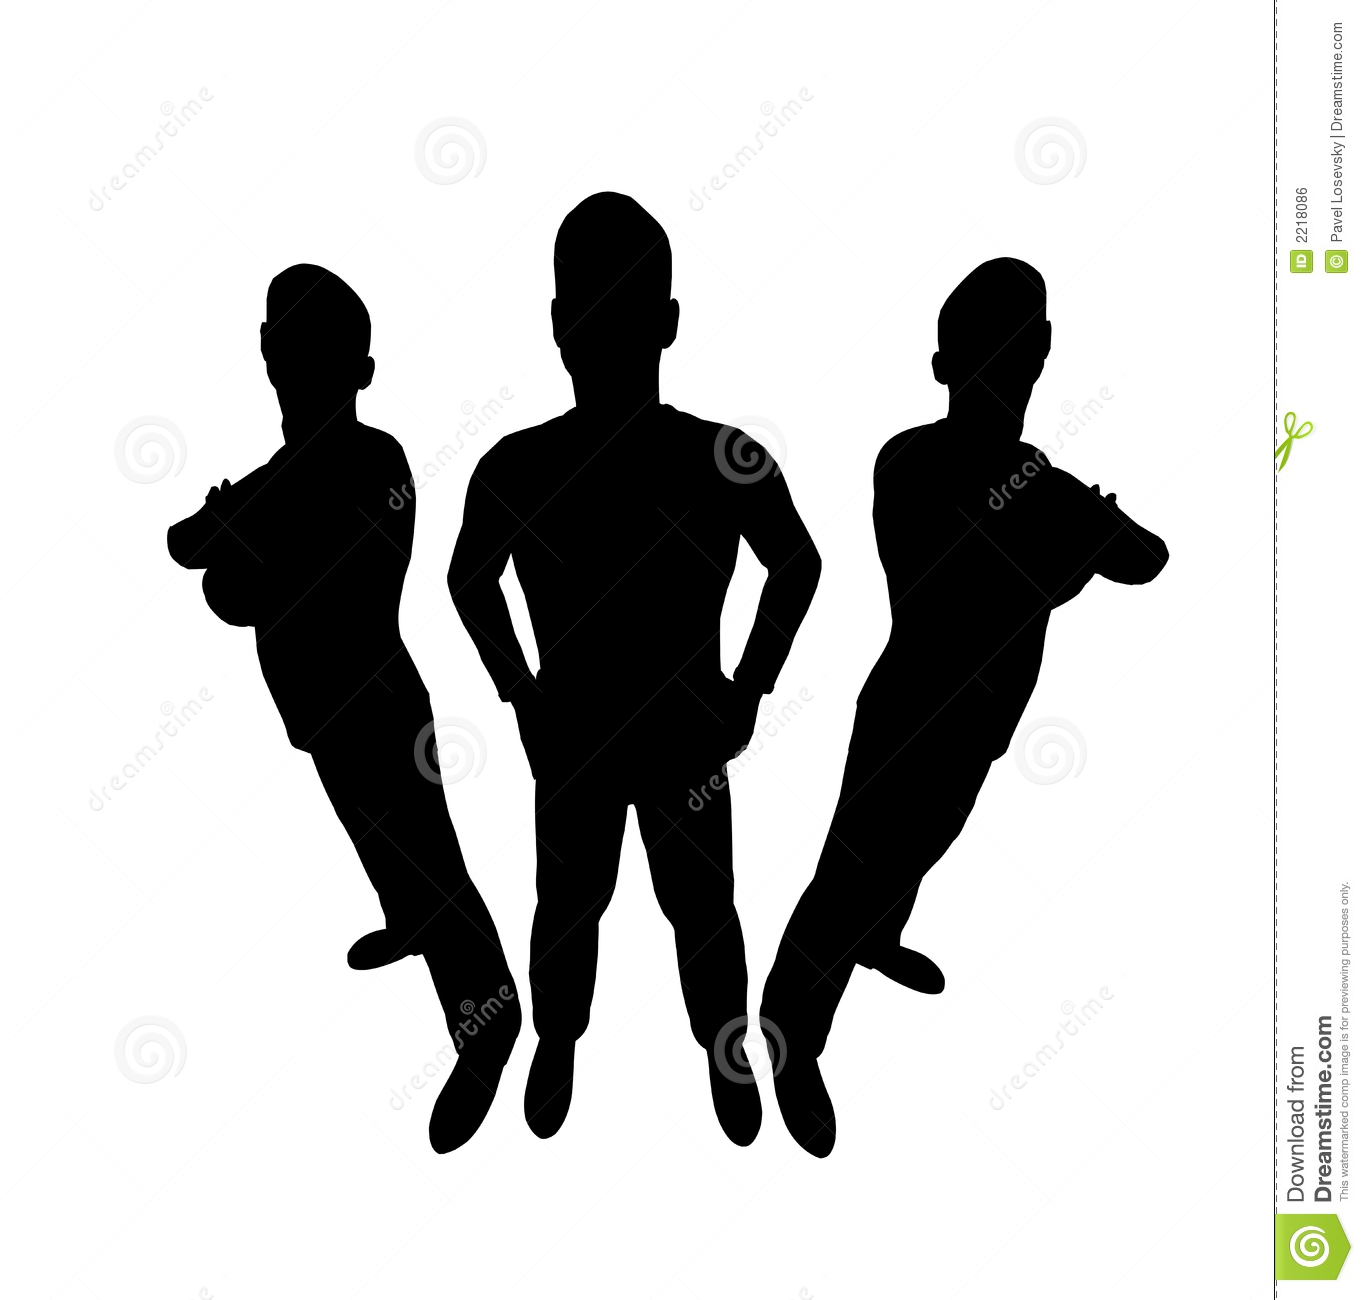 Three Men Silhouette Royalty Free Stock Image - Image: 2218086